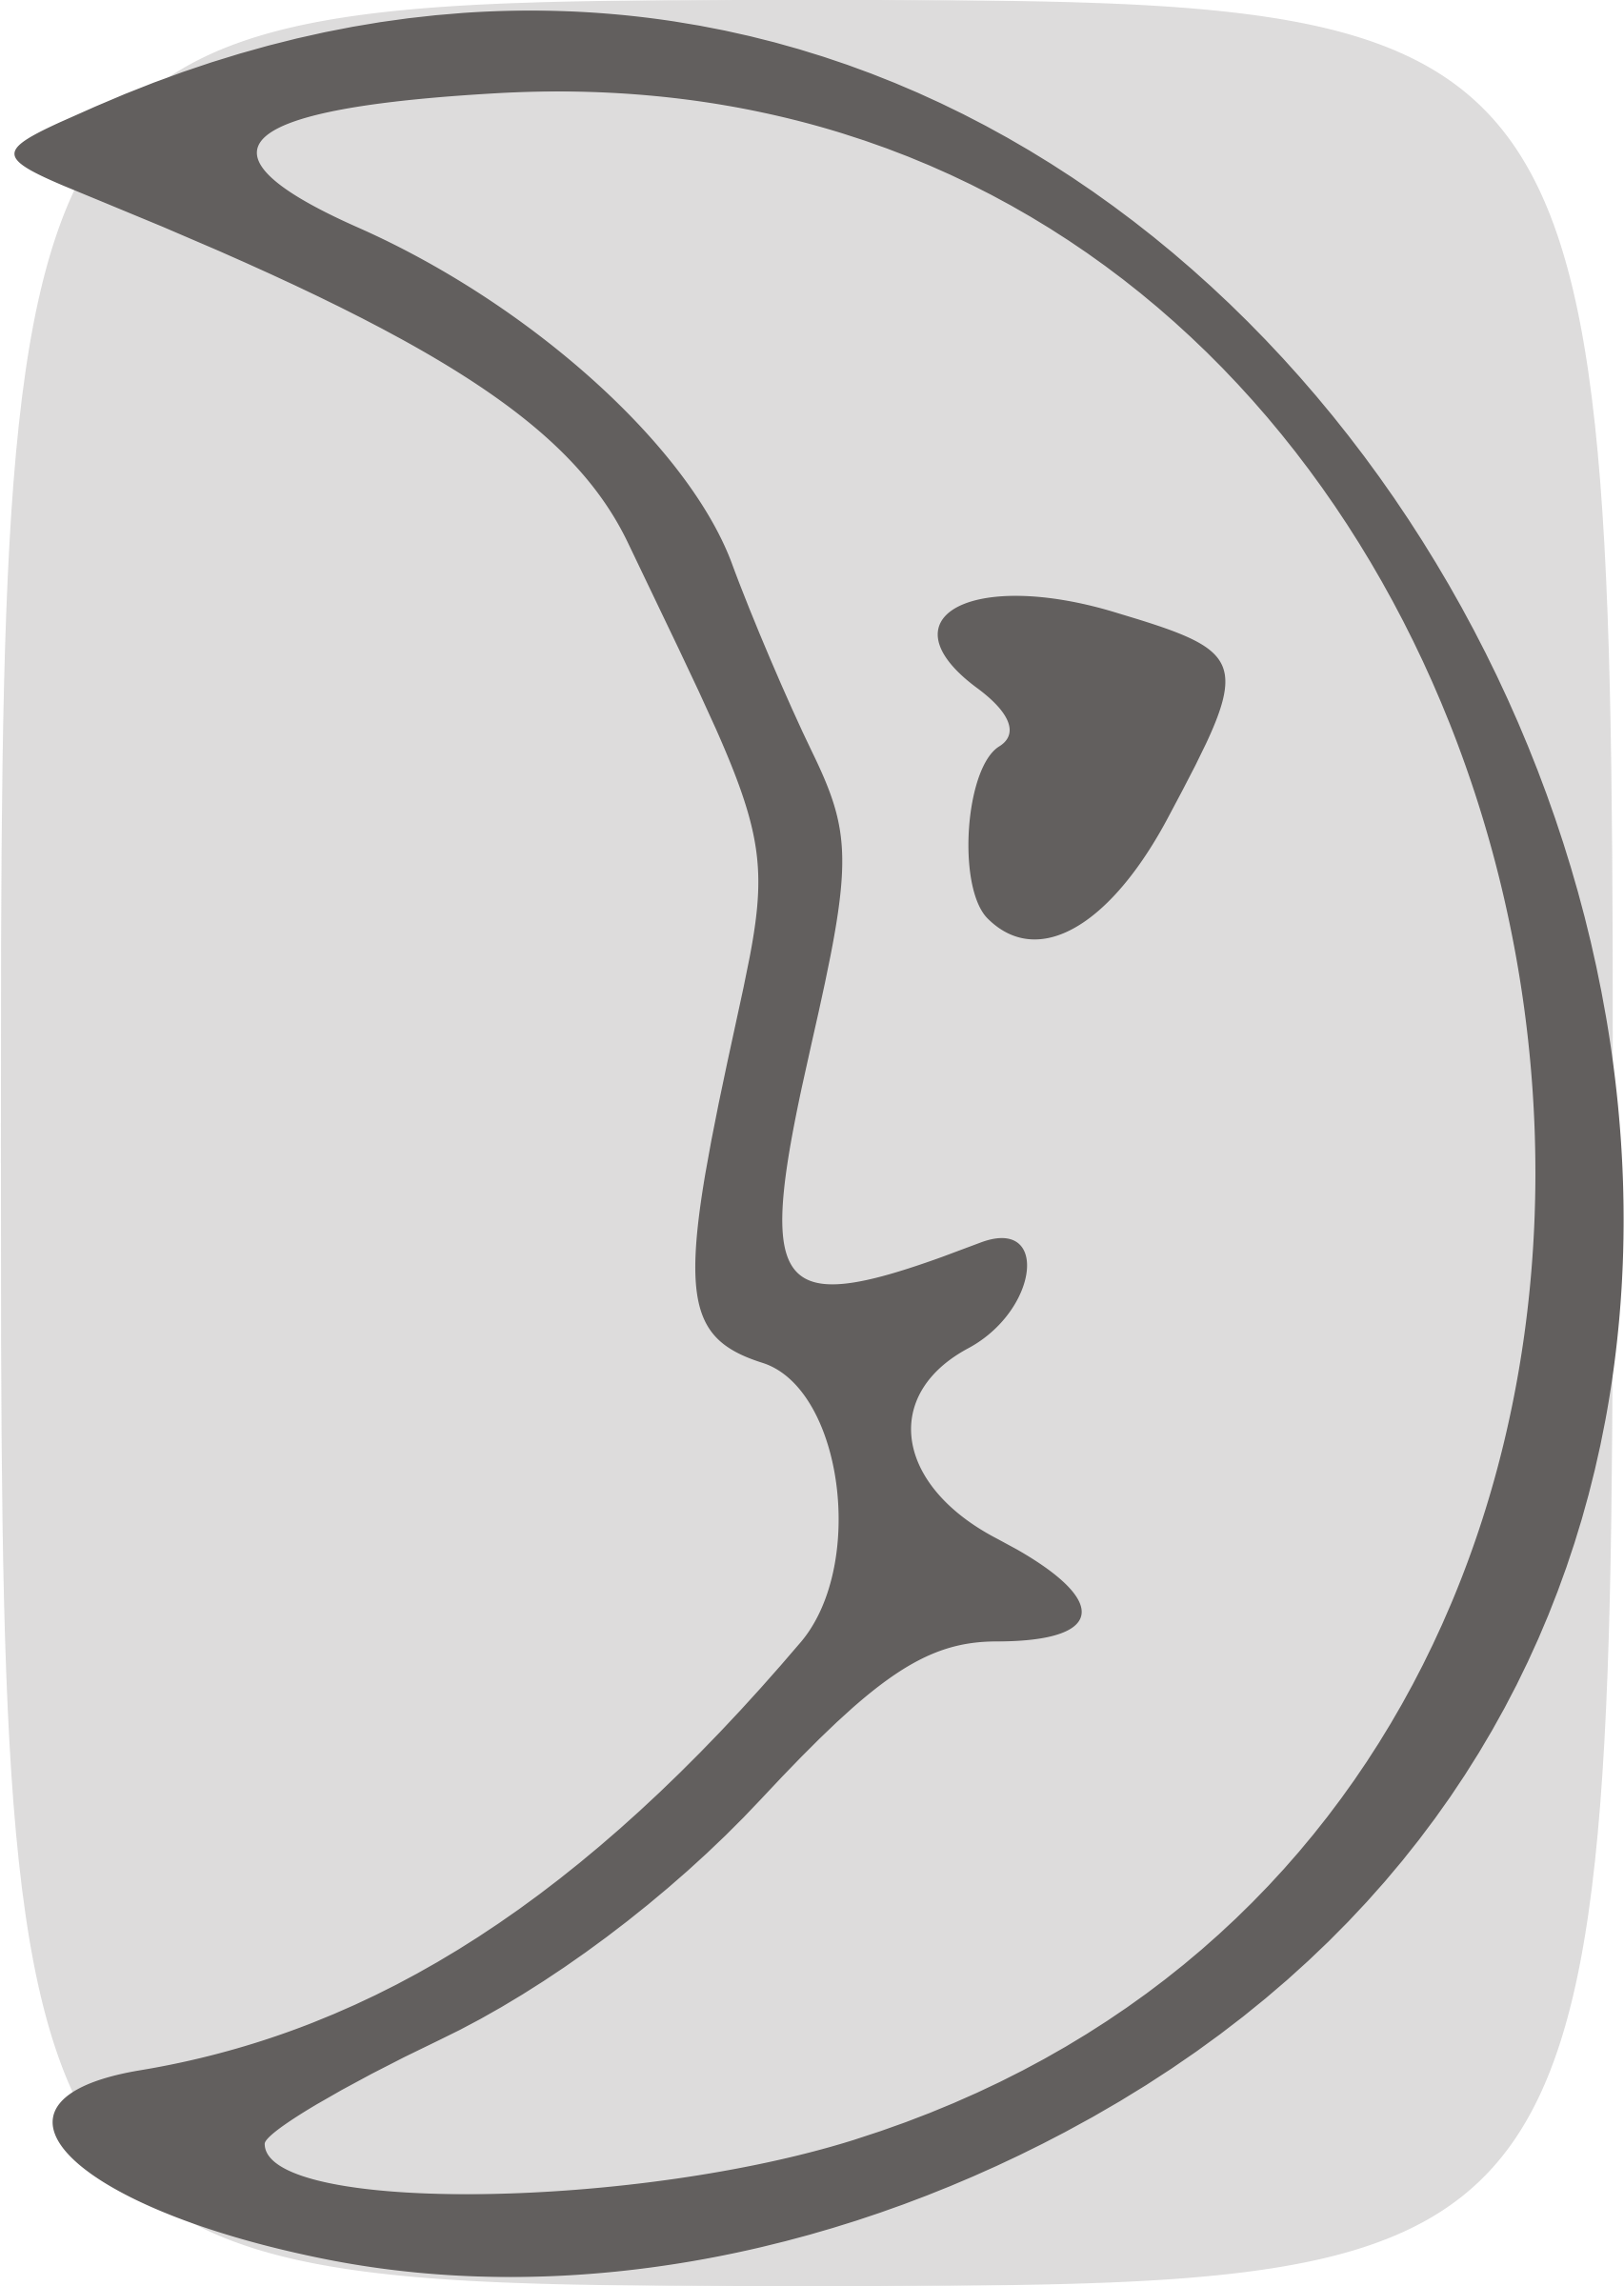 Moon Face By Global Quiz